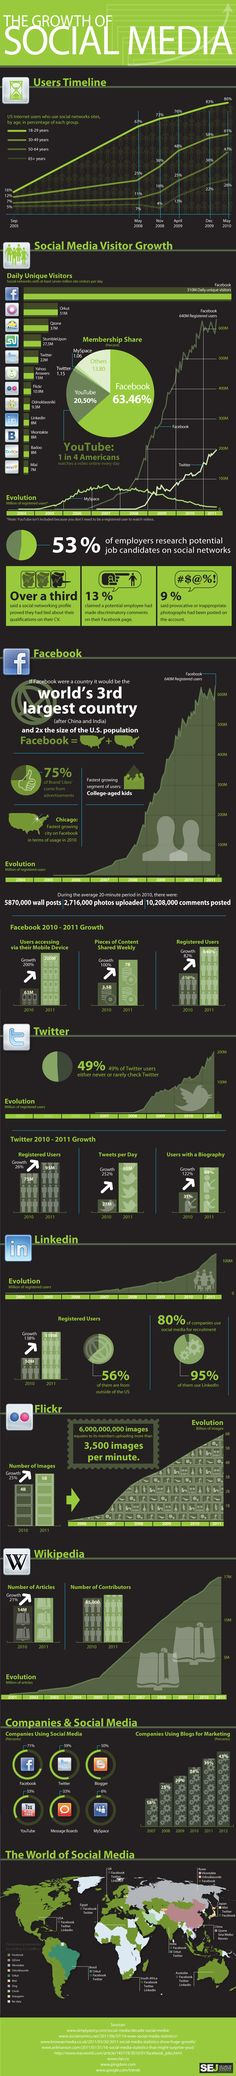 The growth of #socialmedia